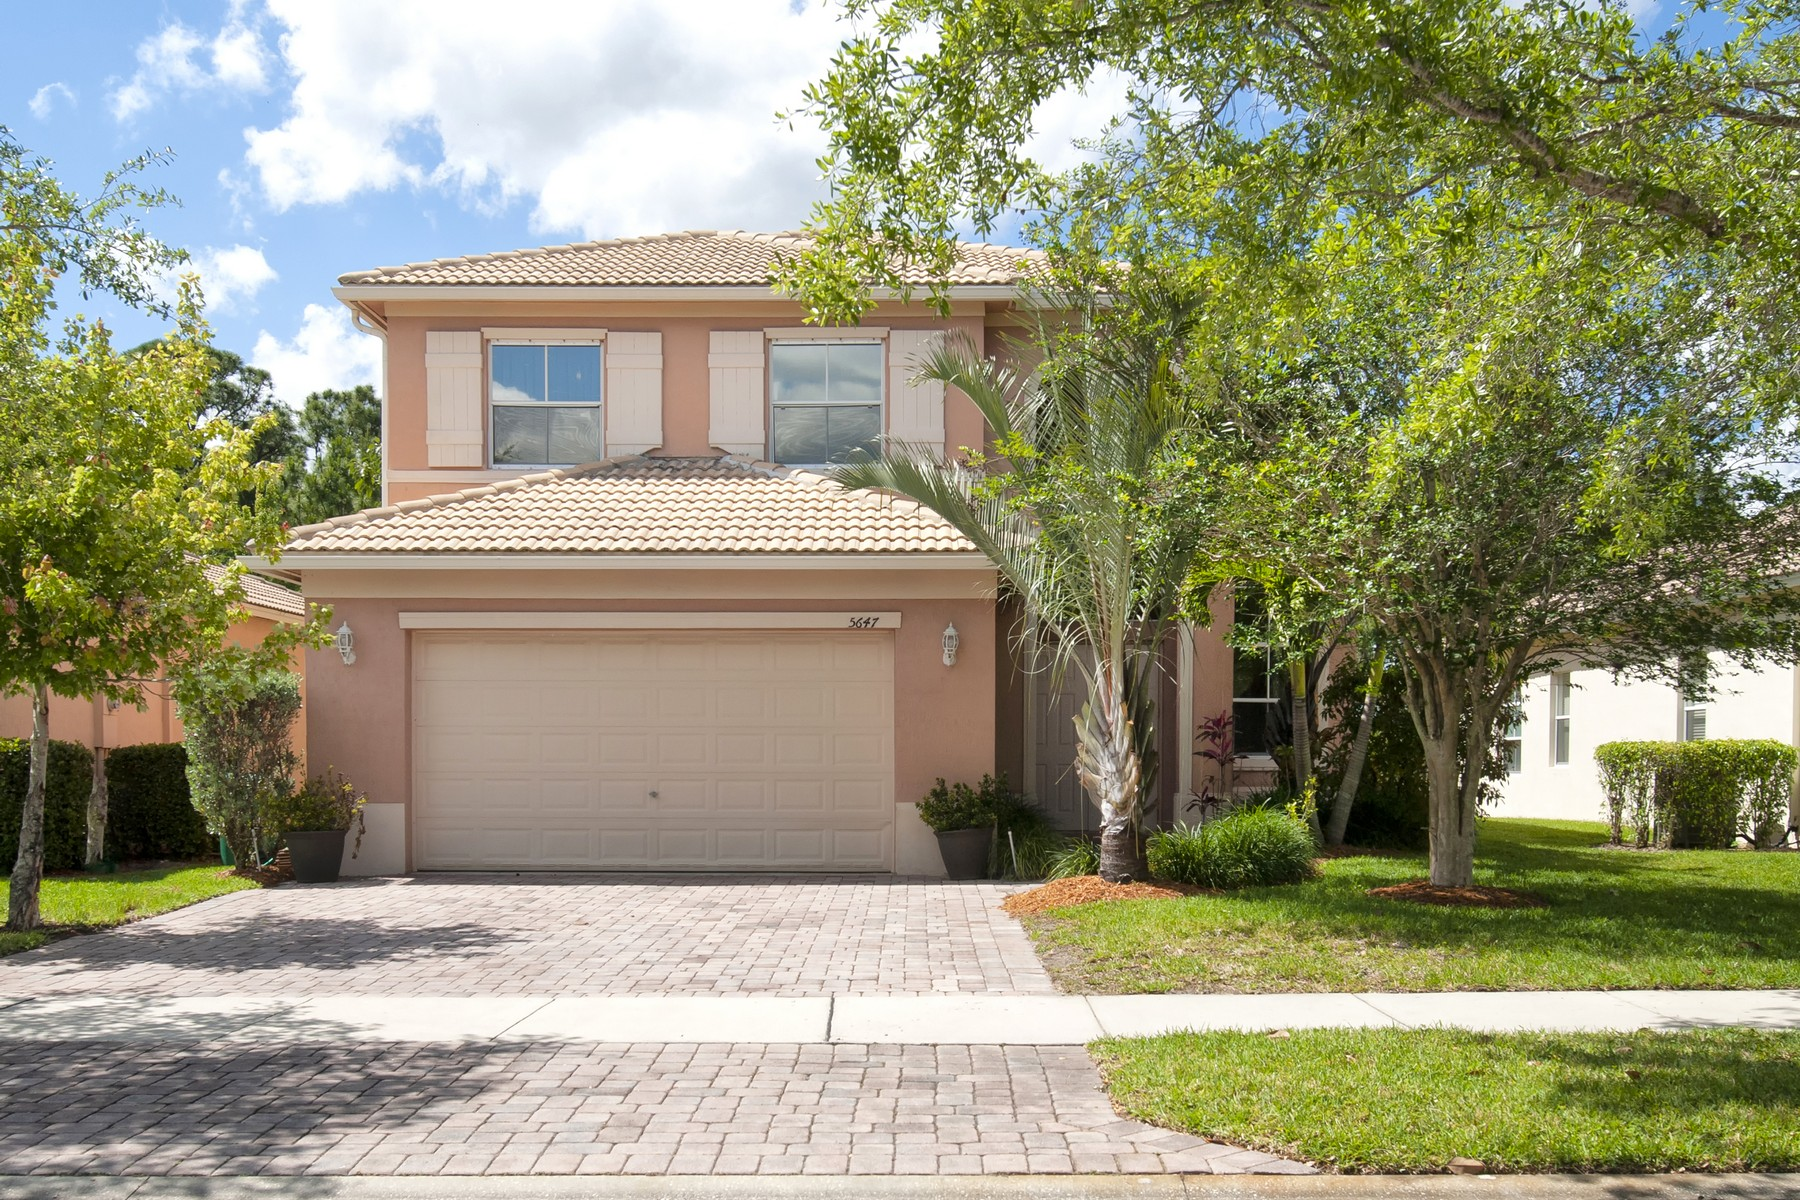 Spacious Four Bedroom Home 5647 Sunberry Circle Fort Pierce, Florida 34951 Vereinigte Staaten